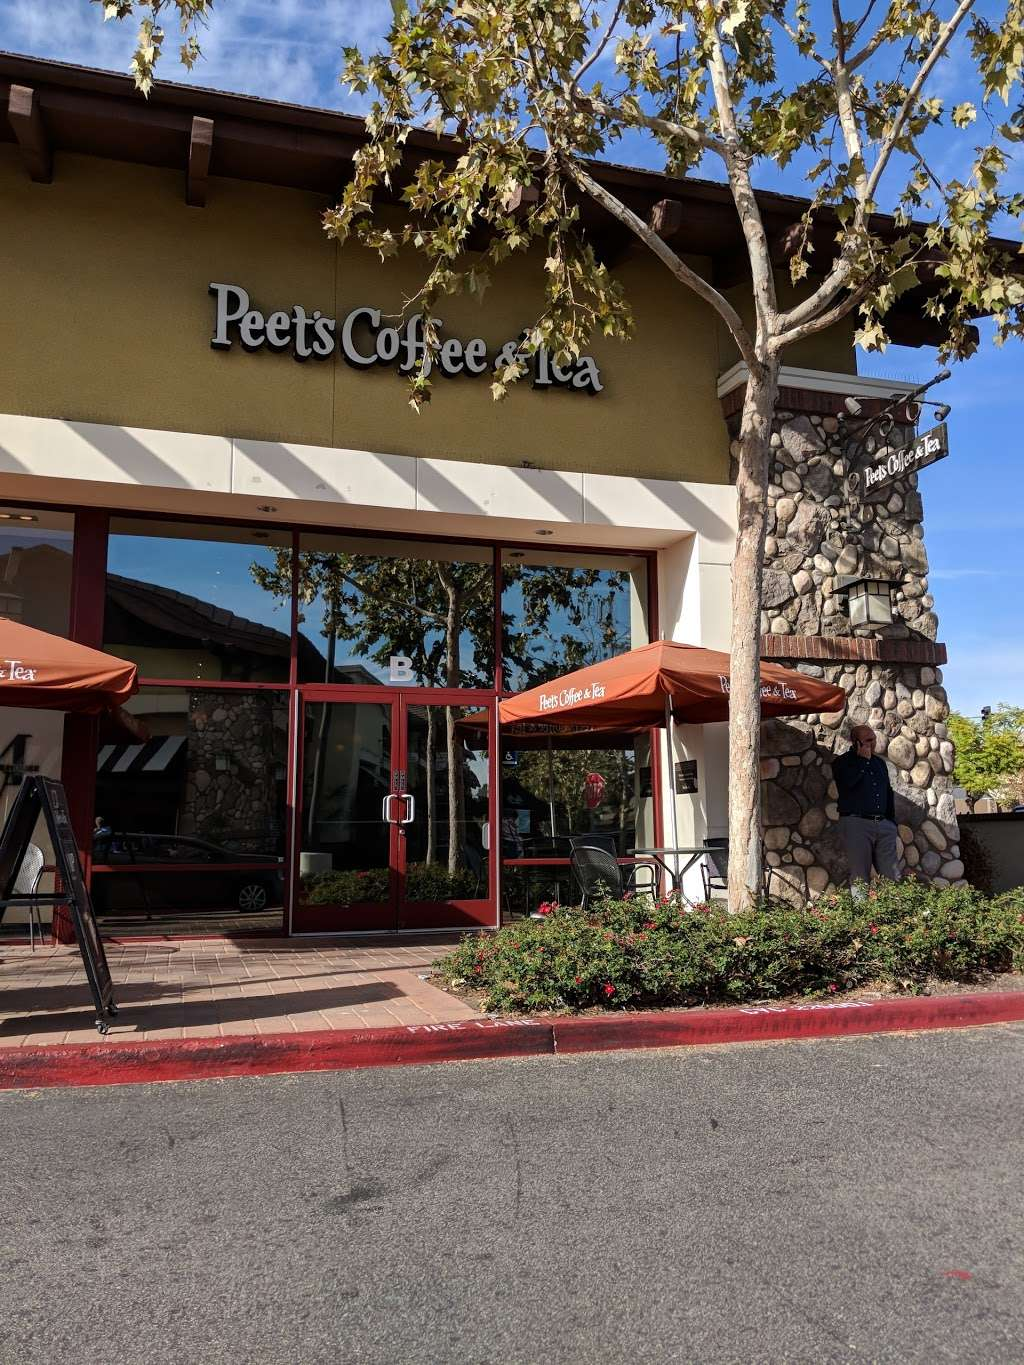 Peets Coffee - cafe    Photo 2 of 10   Address: 23700 El Toro Rd Suite B, Lake Forest, CA 92630, USA   Phone: (949) 420-3500